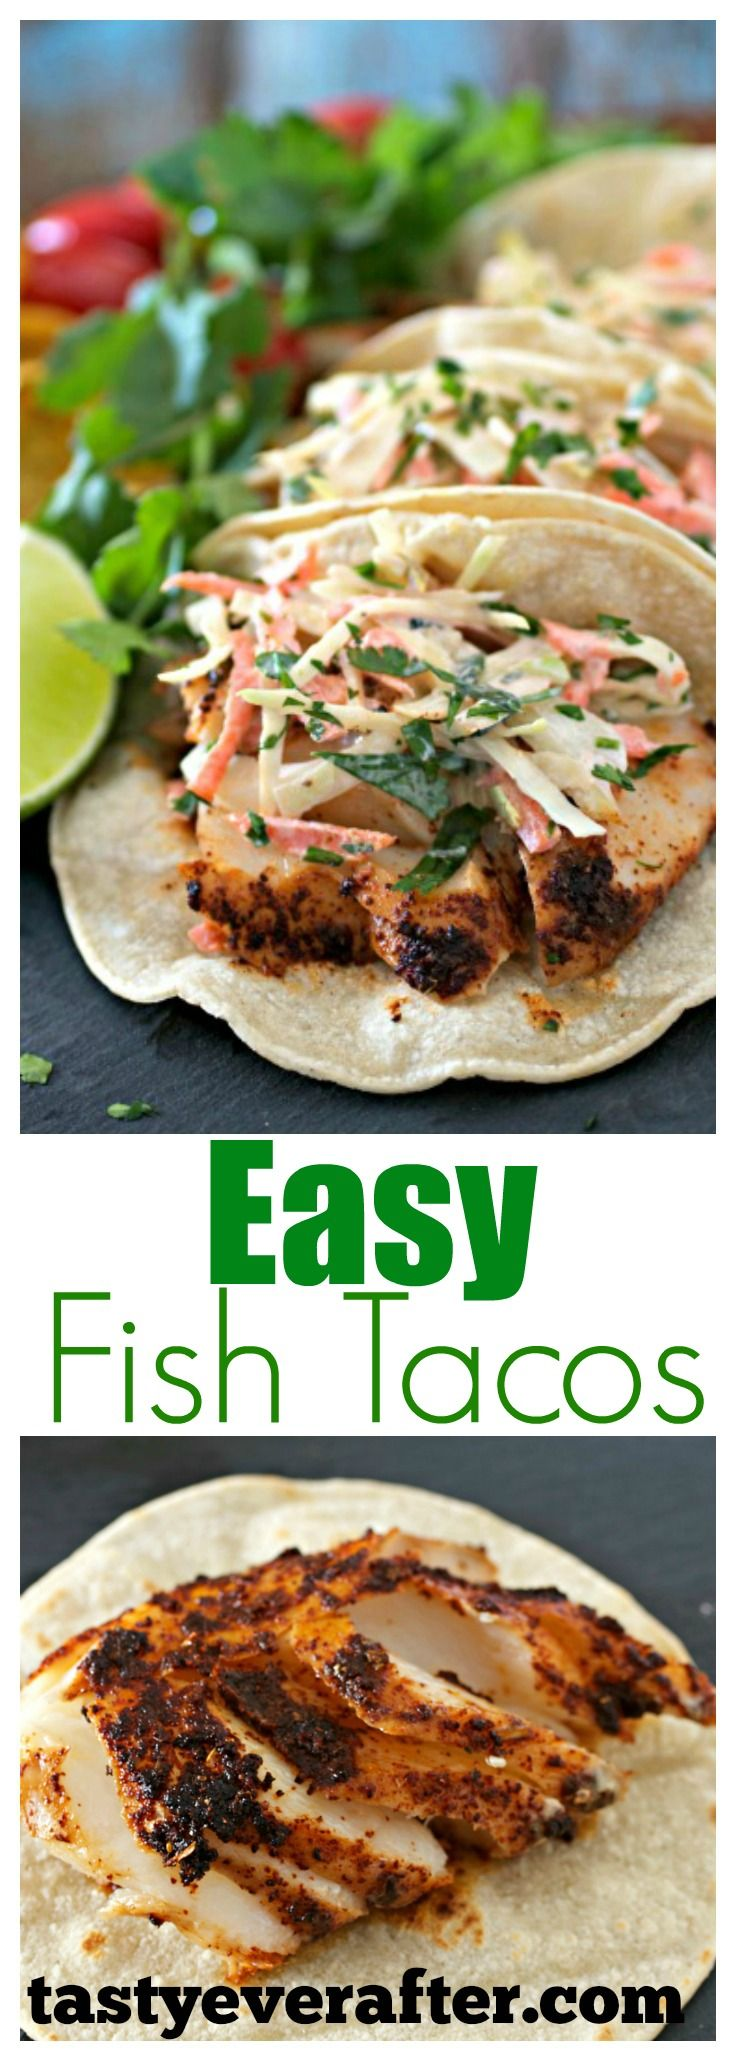 Healthy & delicious, these baked fish tacos are perfect for Taco Tuesday or for lunch or dinner anytime!  #tastyeverafter